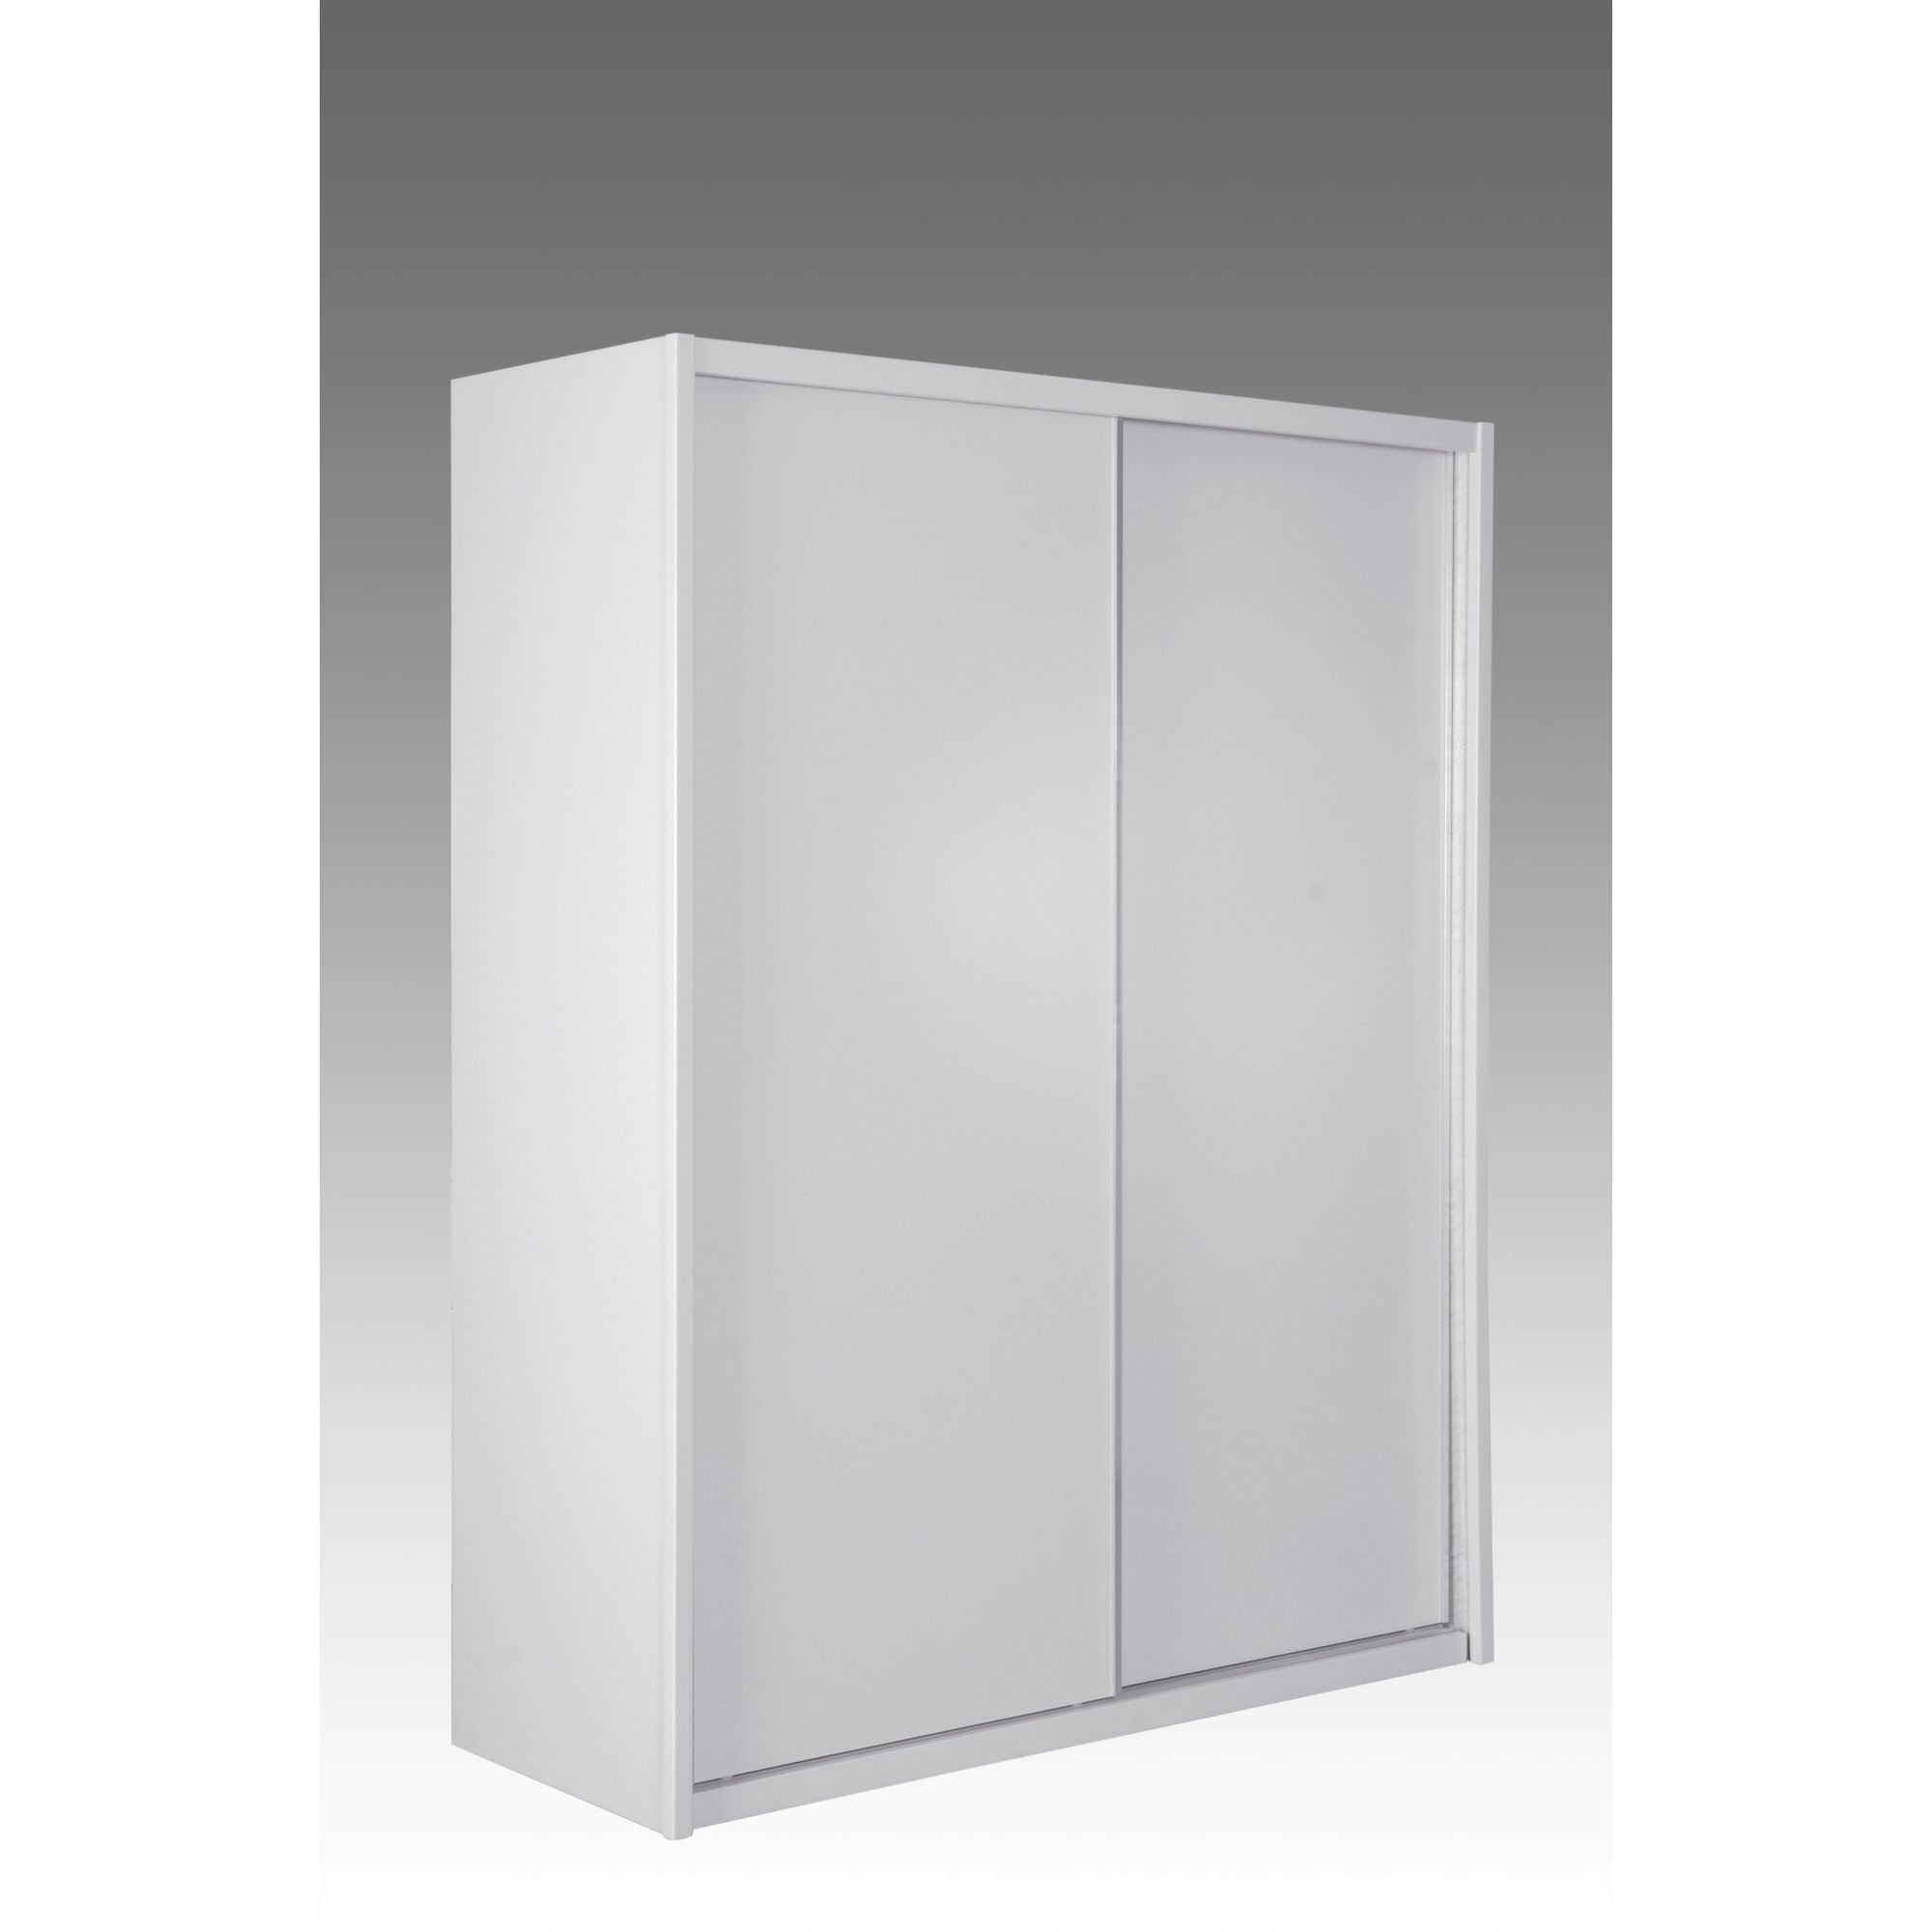 Elements Louisa 2 Door Sliding Wardrobe with Gloss Doors at Tesco Direct